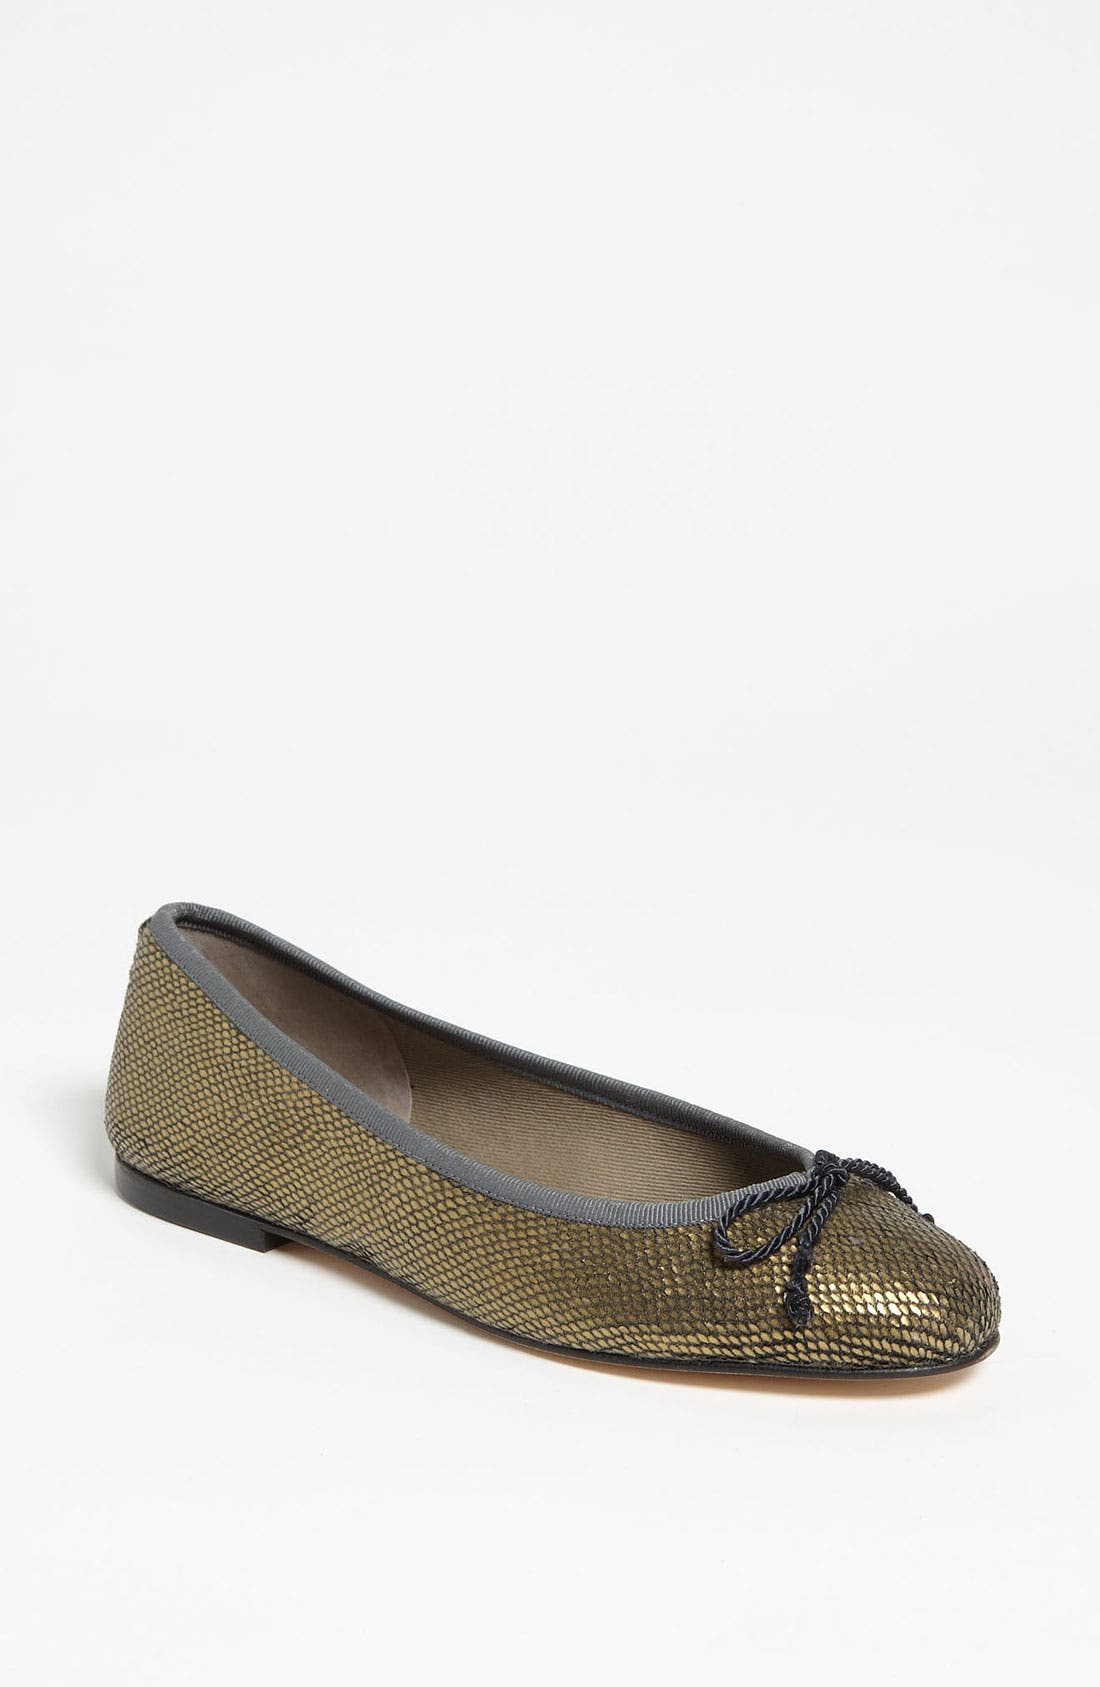 Alternate Image 1 Selected - French Sole 'Follow' Ballet Flat